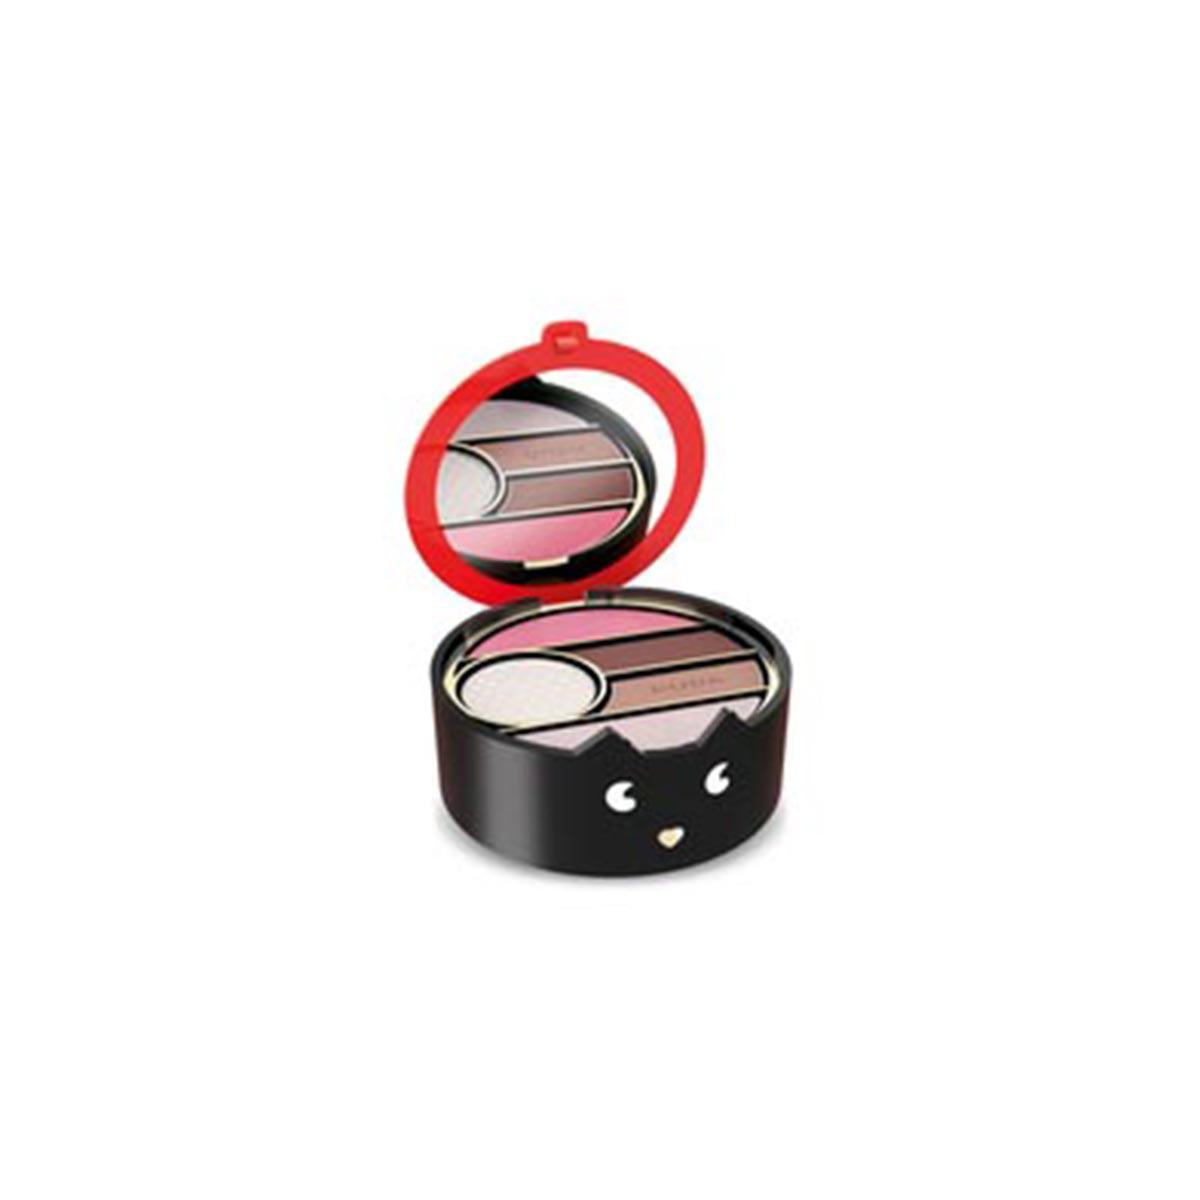 Pupa Pupacat 2 Coffret Makeup 5Gr